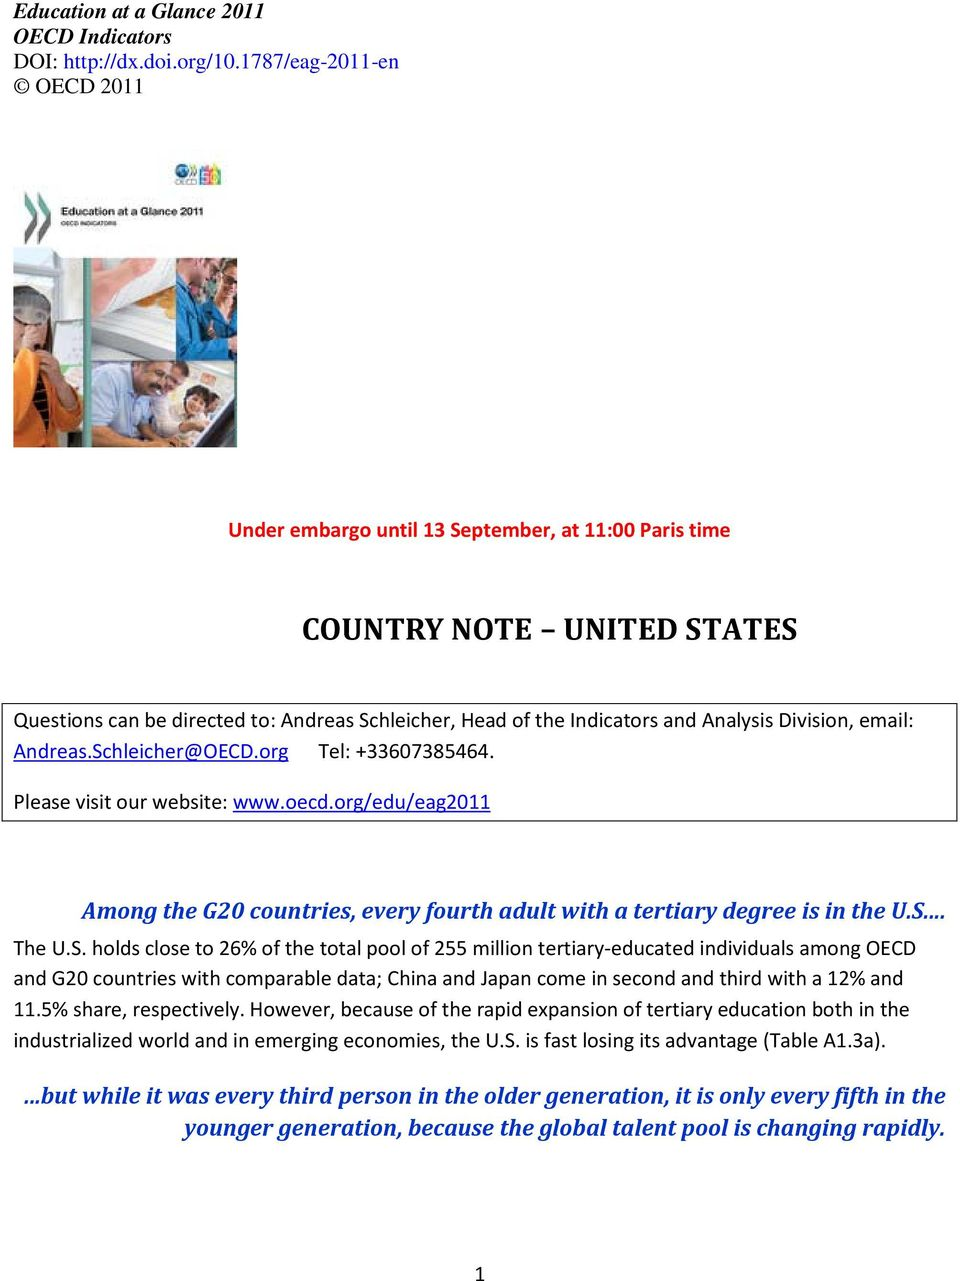 Division, email: Andreas.Schleicher@OECD.org Tel: +33607385464. Please visit our website: www.oecd.org/edu/eag2011 Among the G20 countries, every fourth adult with a tertiary degree is in the U.S... The U.